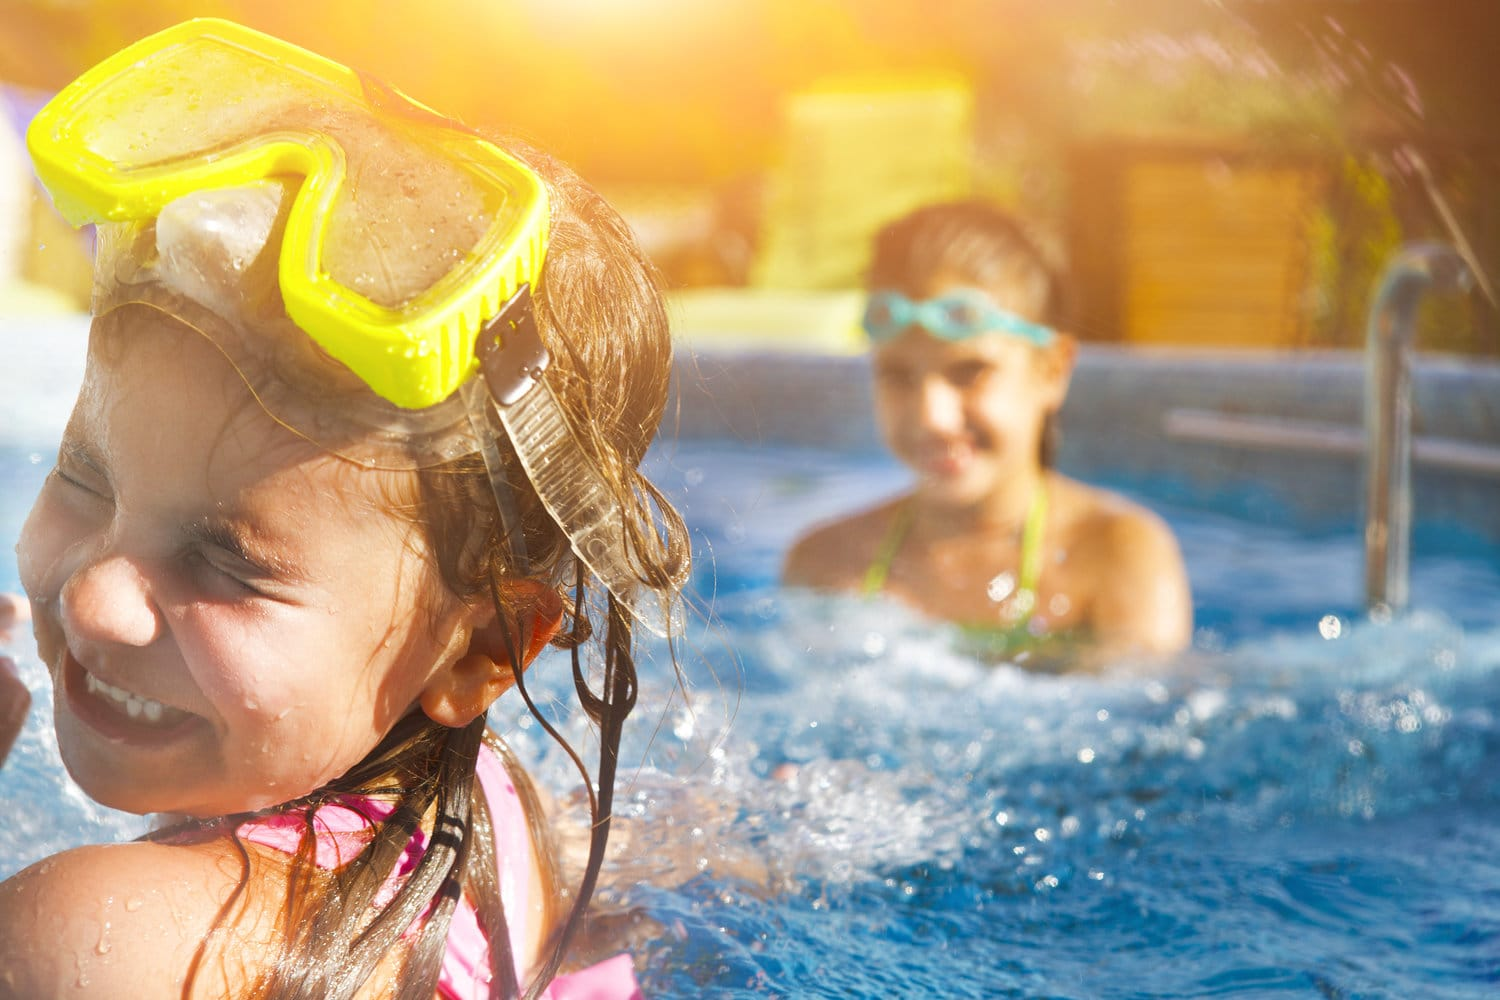 Are you guilty of the eight most common pool safety issues?